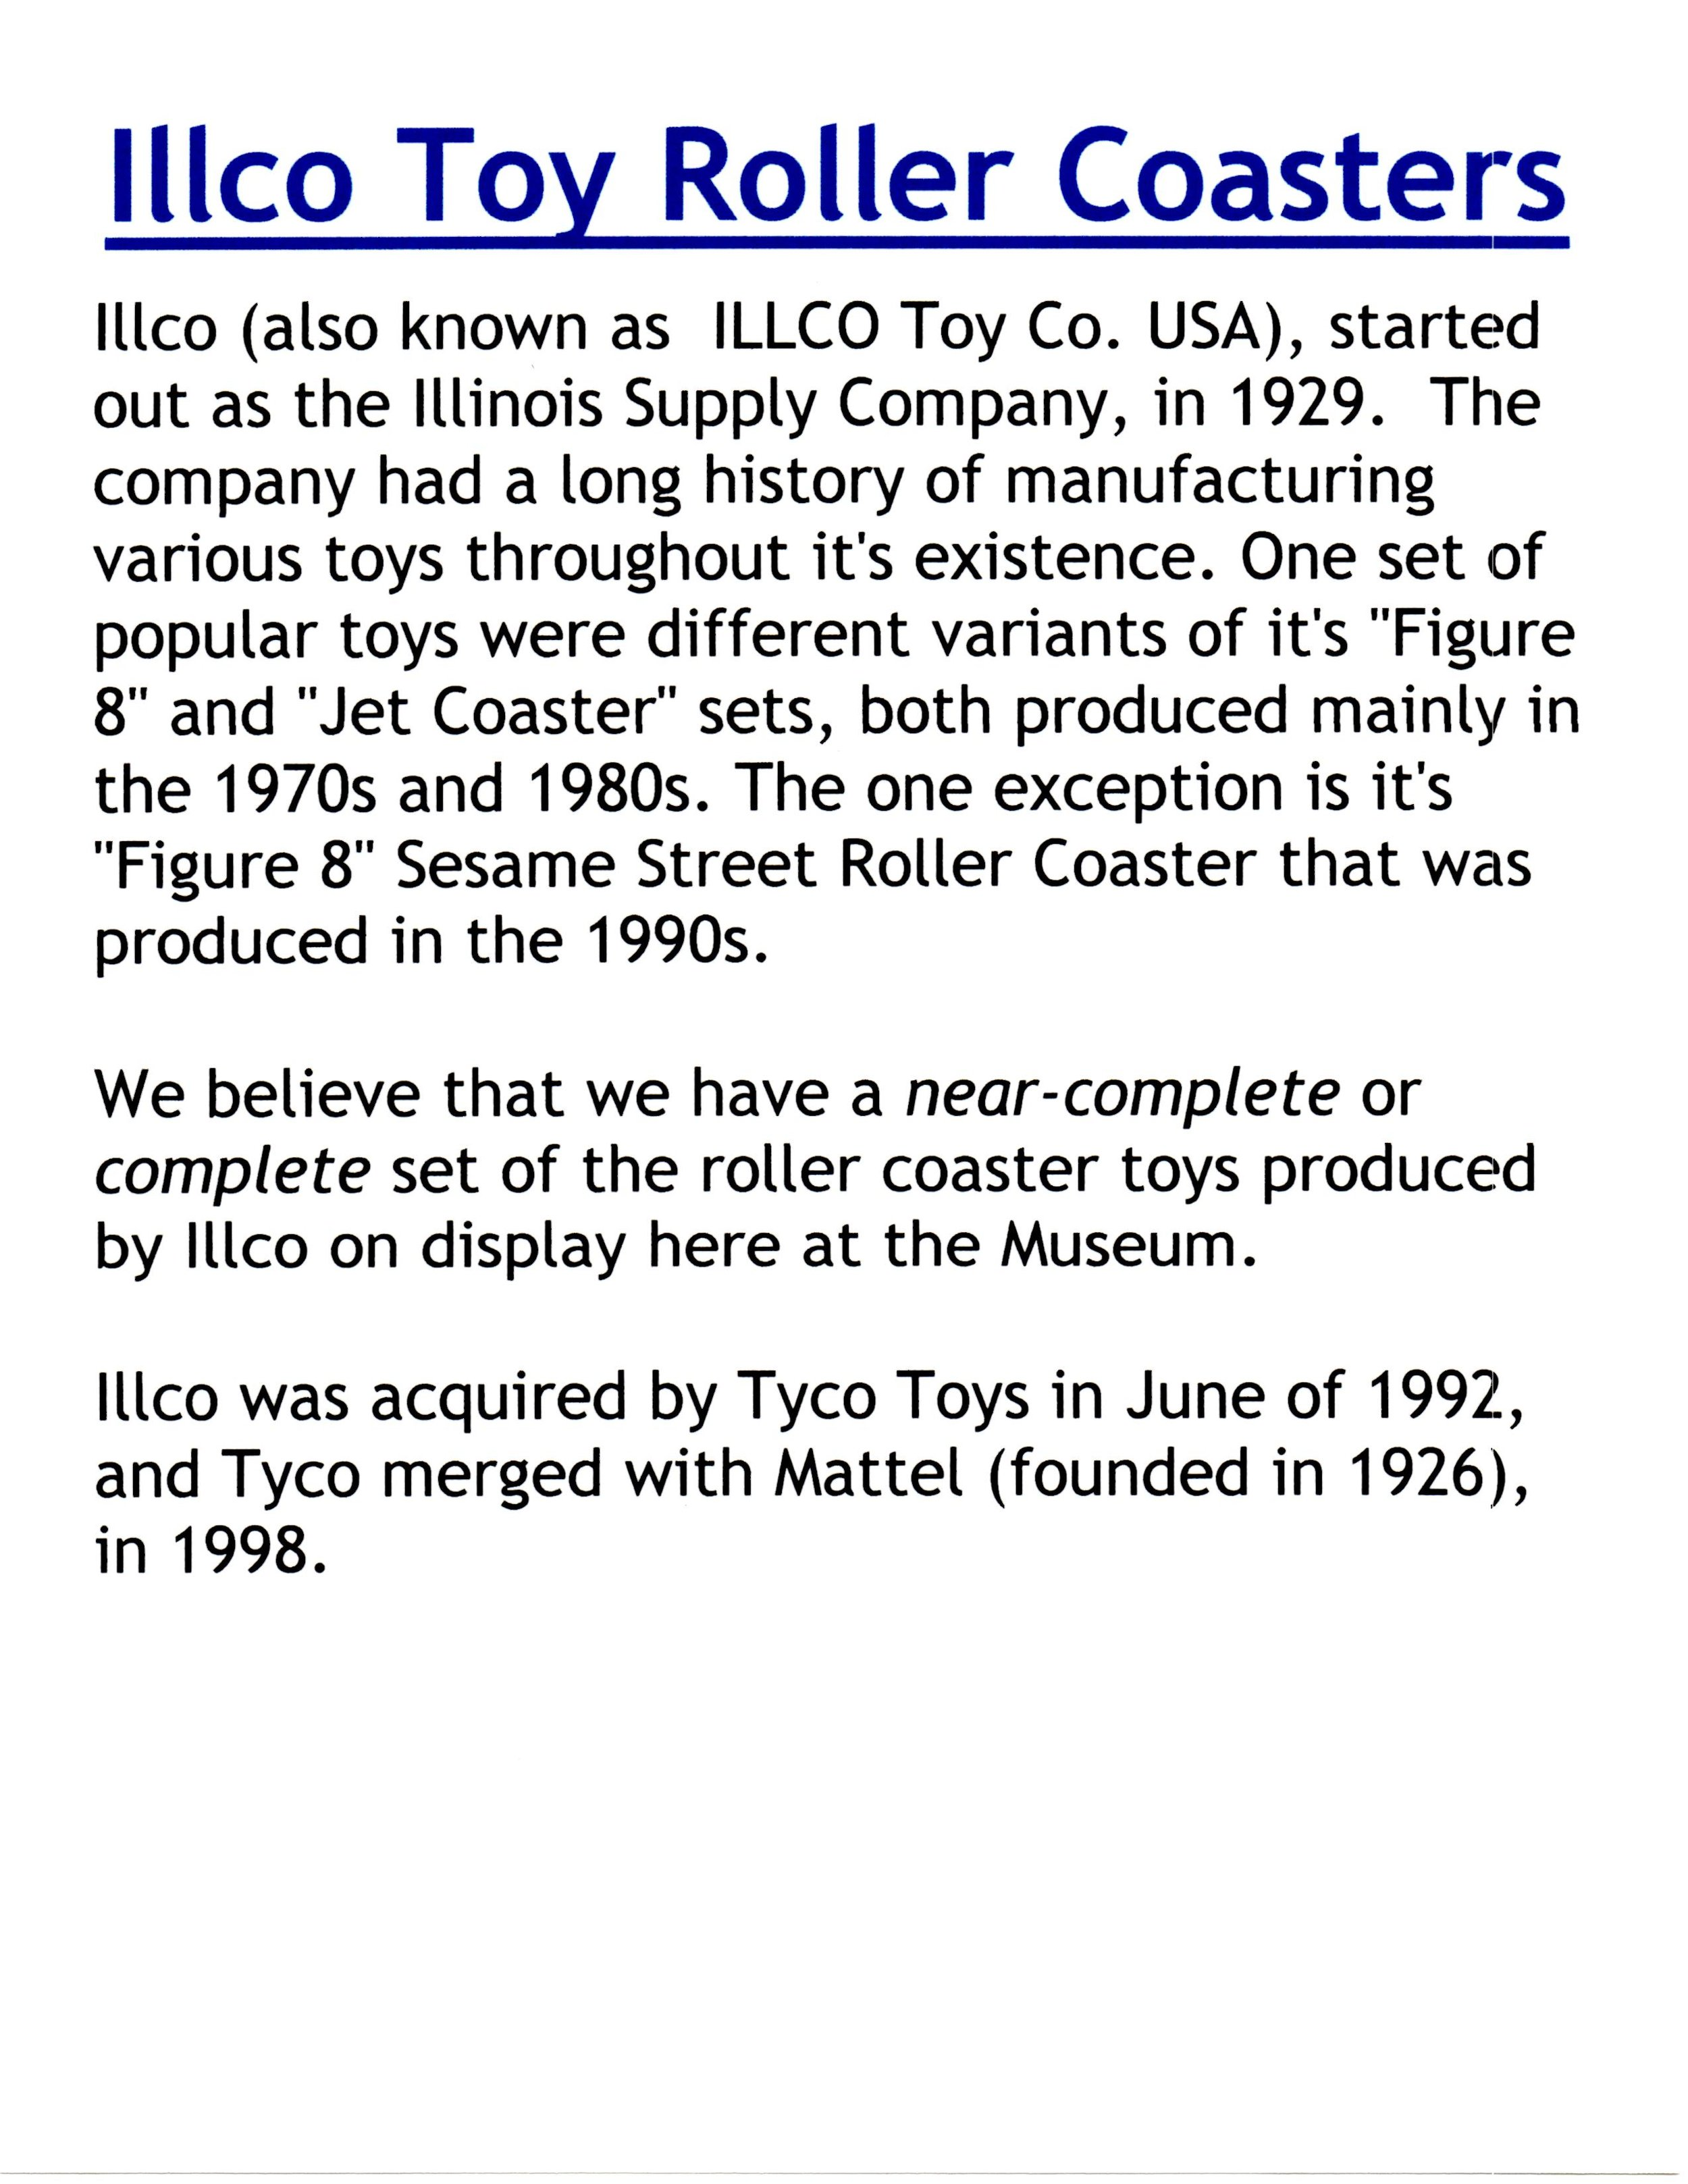 Exhibit: Playtime: Roller Coaster Toy Gallery - Illco Roller Coaster Toys Description